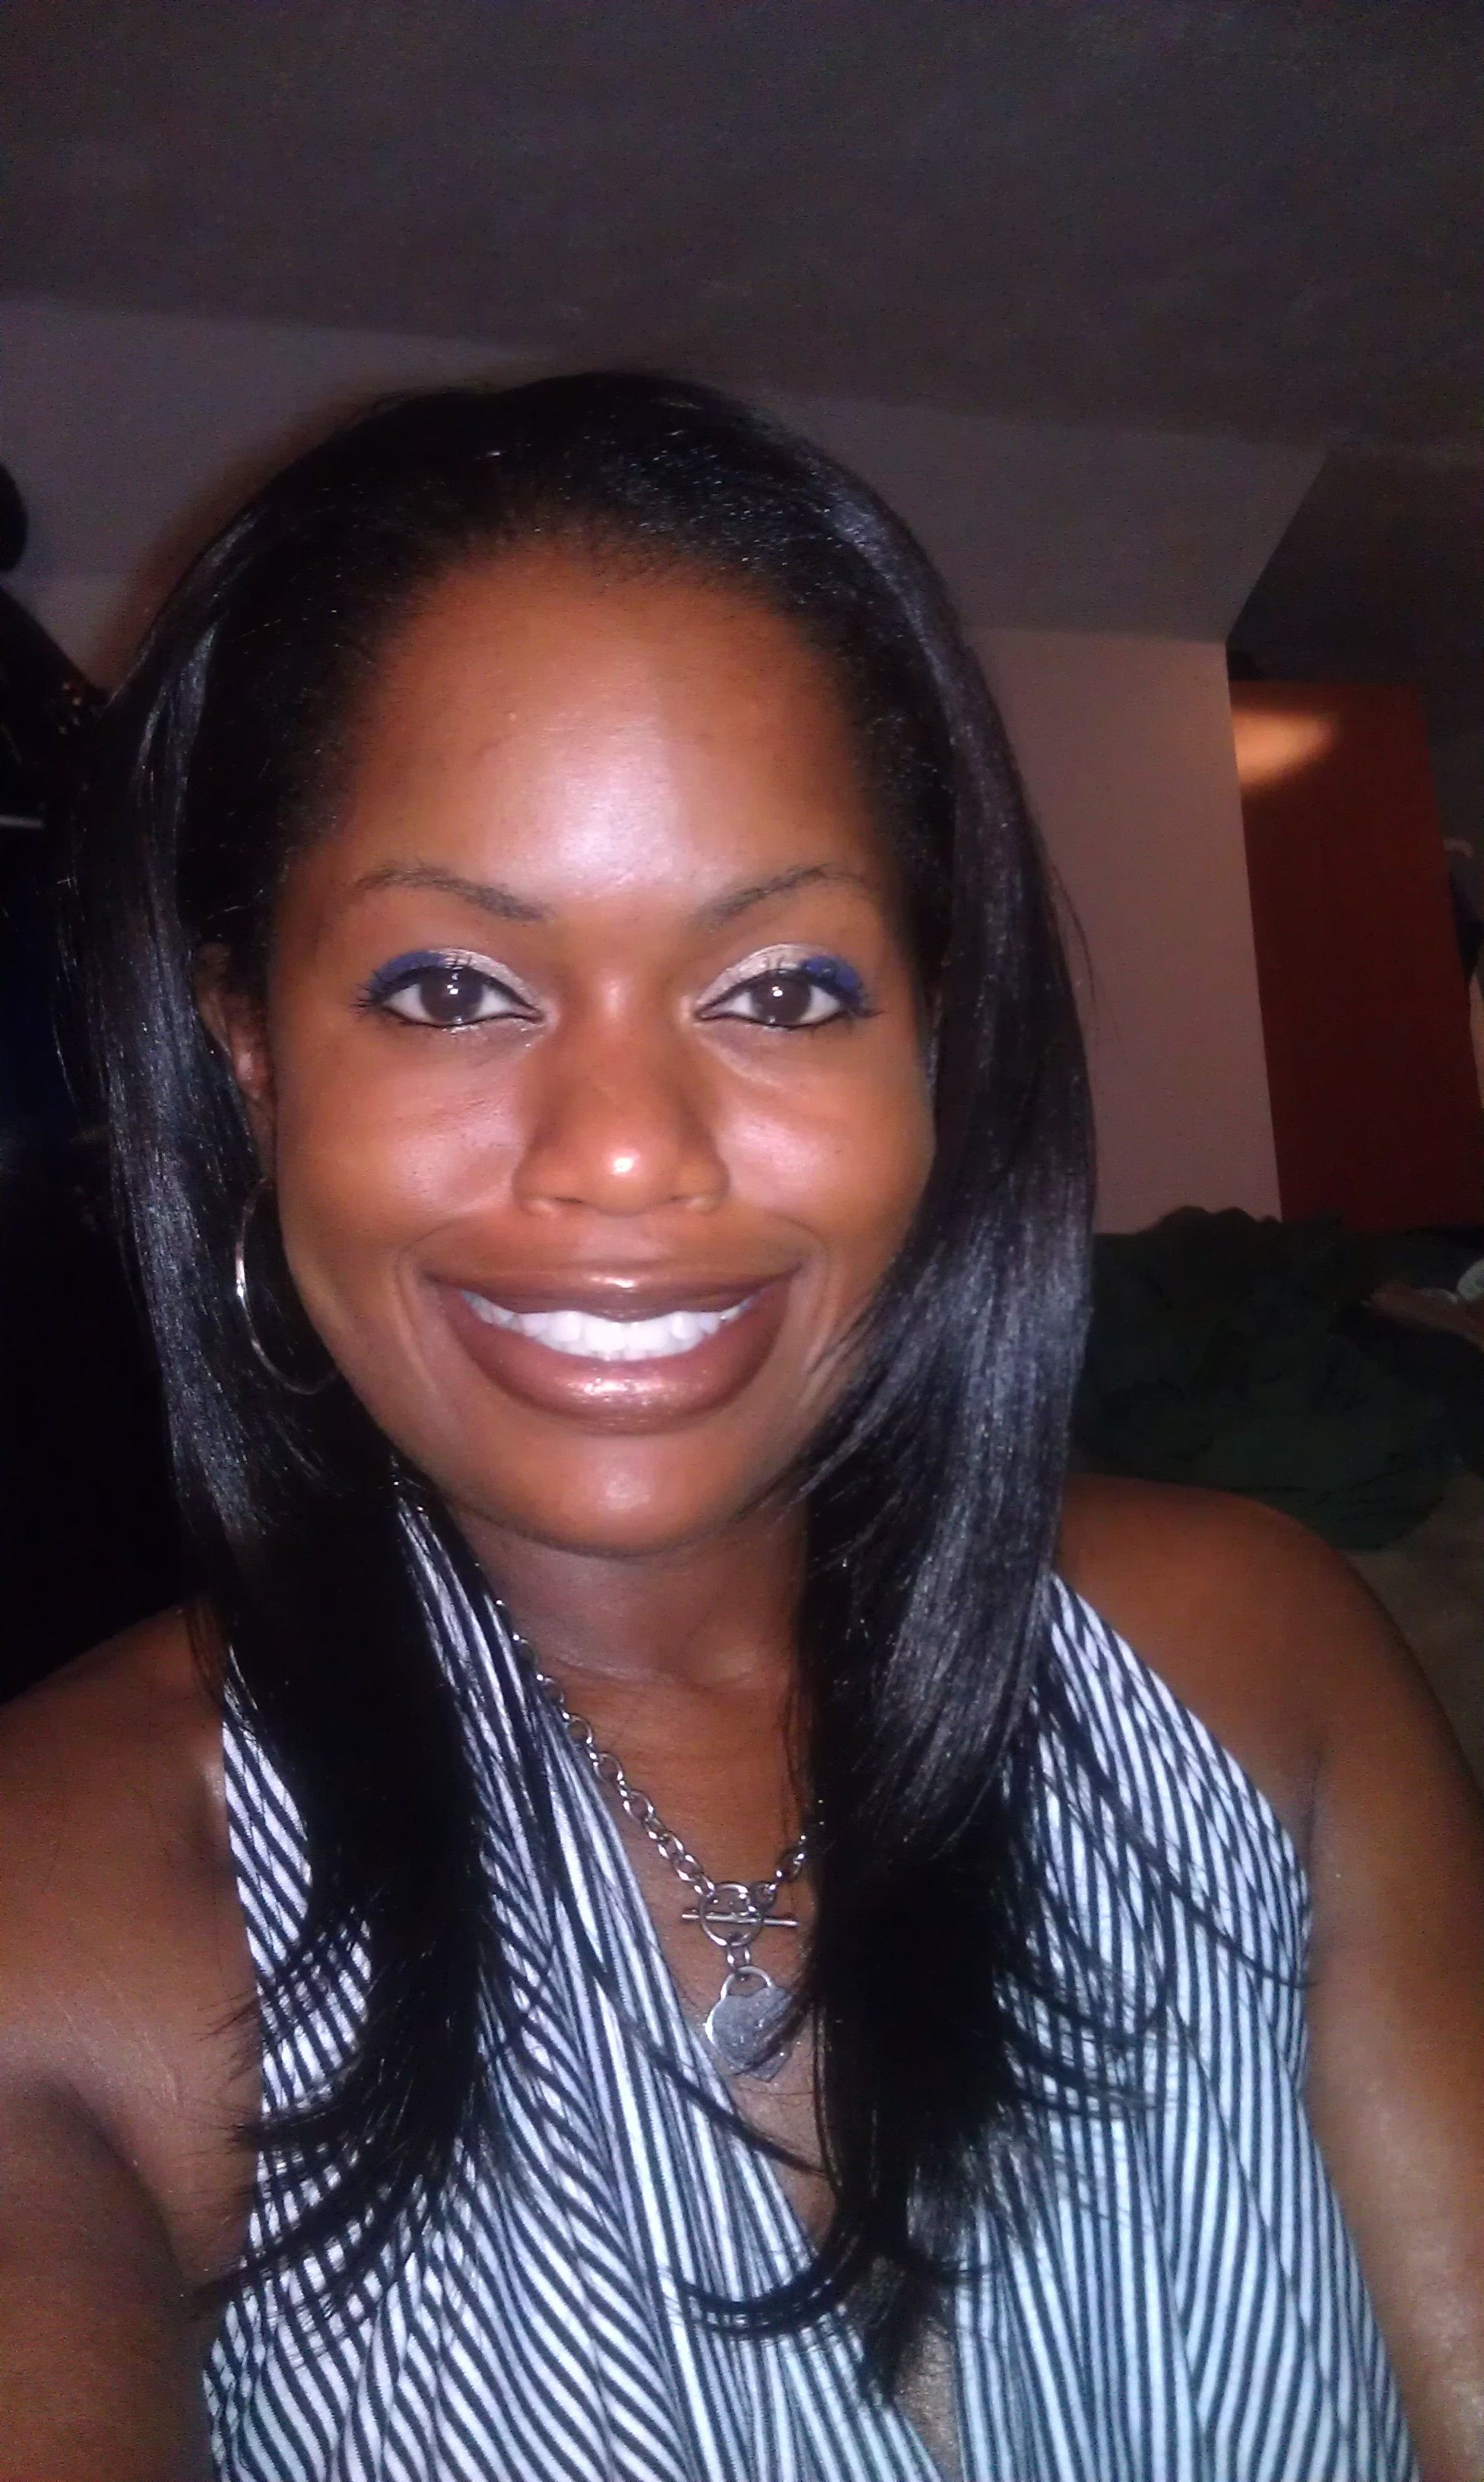 kimberly black singles Free to join & browse - 1000's of singles in kimberly, idaho - interracial dating, relationships & marriage online.